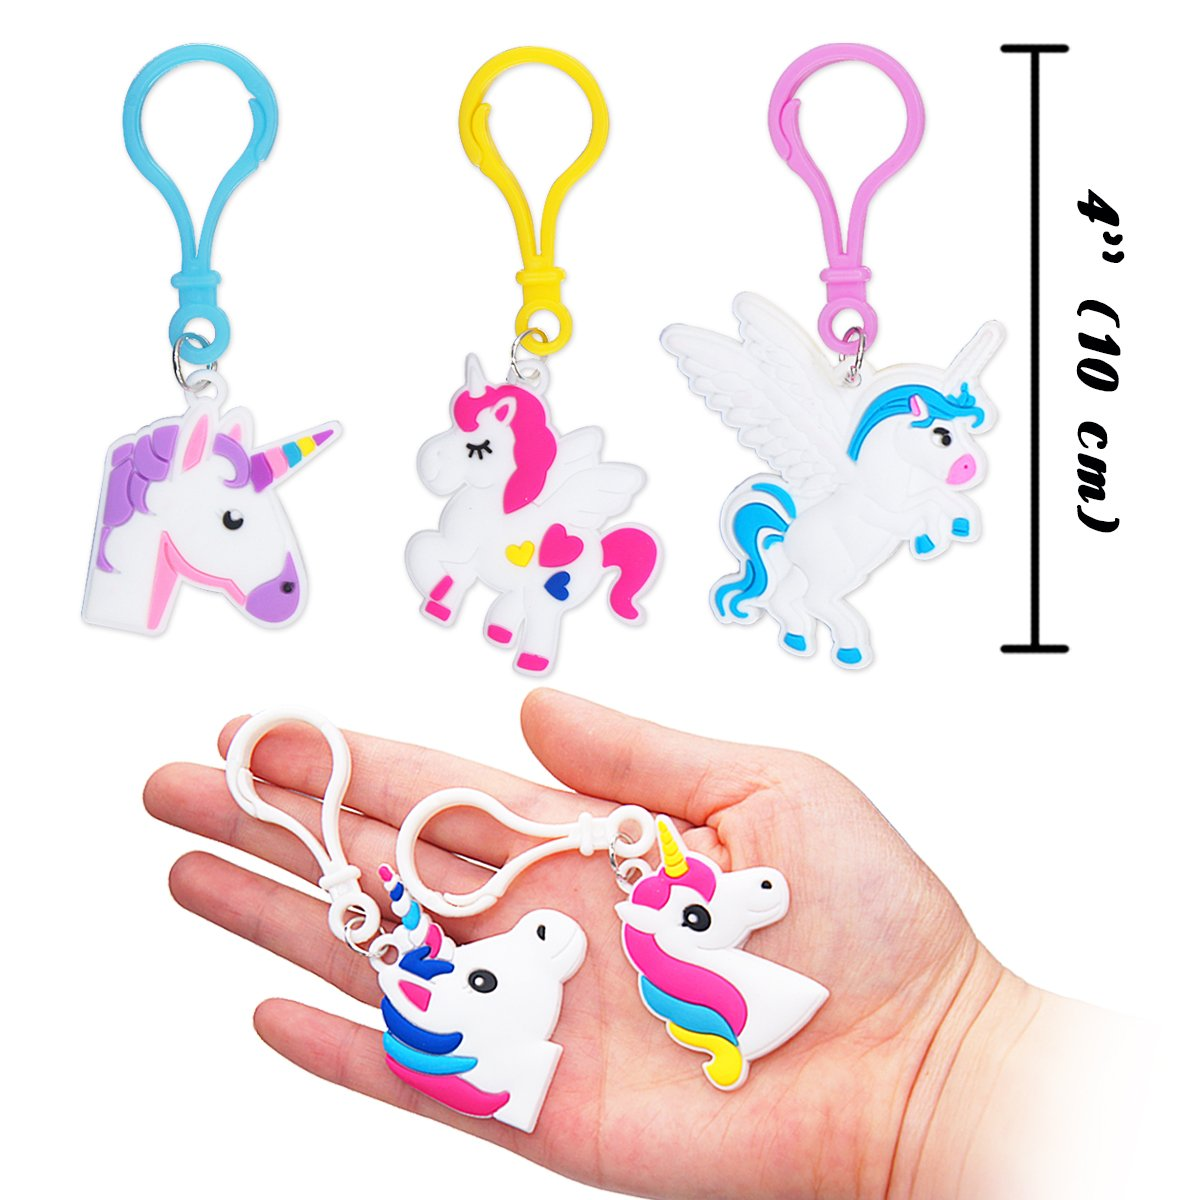 Emoji Birthday Party Favors Supplies for Kids Girls Rubber Band Keychains Classroom Toys Prizes Gifts Zikwell Pawliss 24 Pack Unicorn Slap Bracelets Wristband Backpack Clips